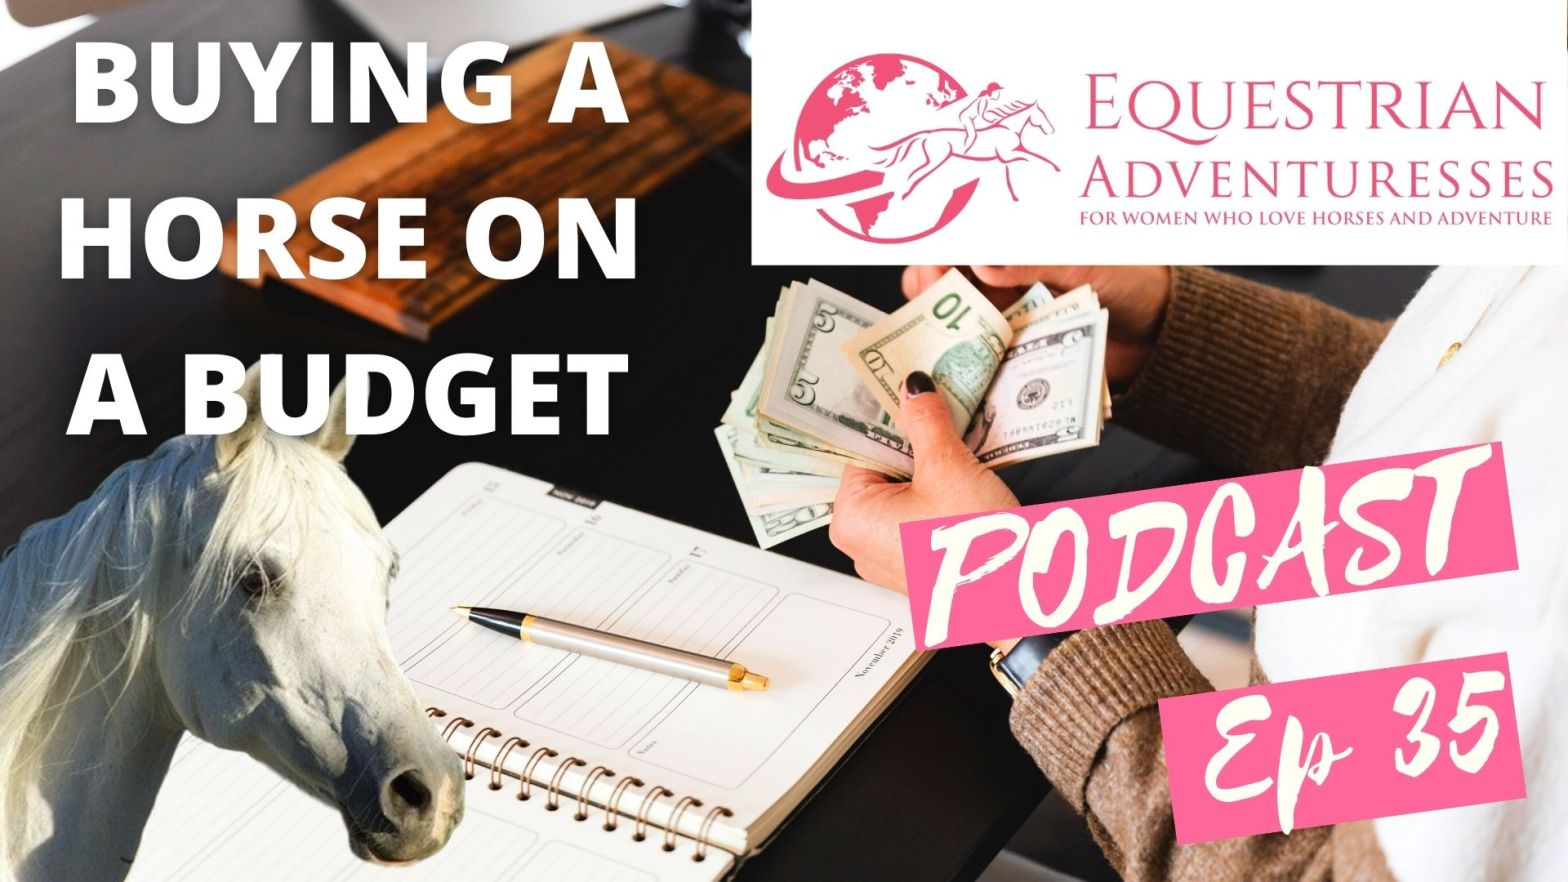 Equestrian Adventuresses Travel and Horse Podcast Ep 35 - Buying a horse on a budget: Tips to saving money when buying a horse